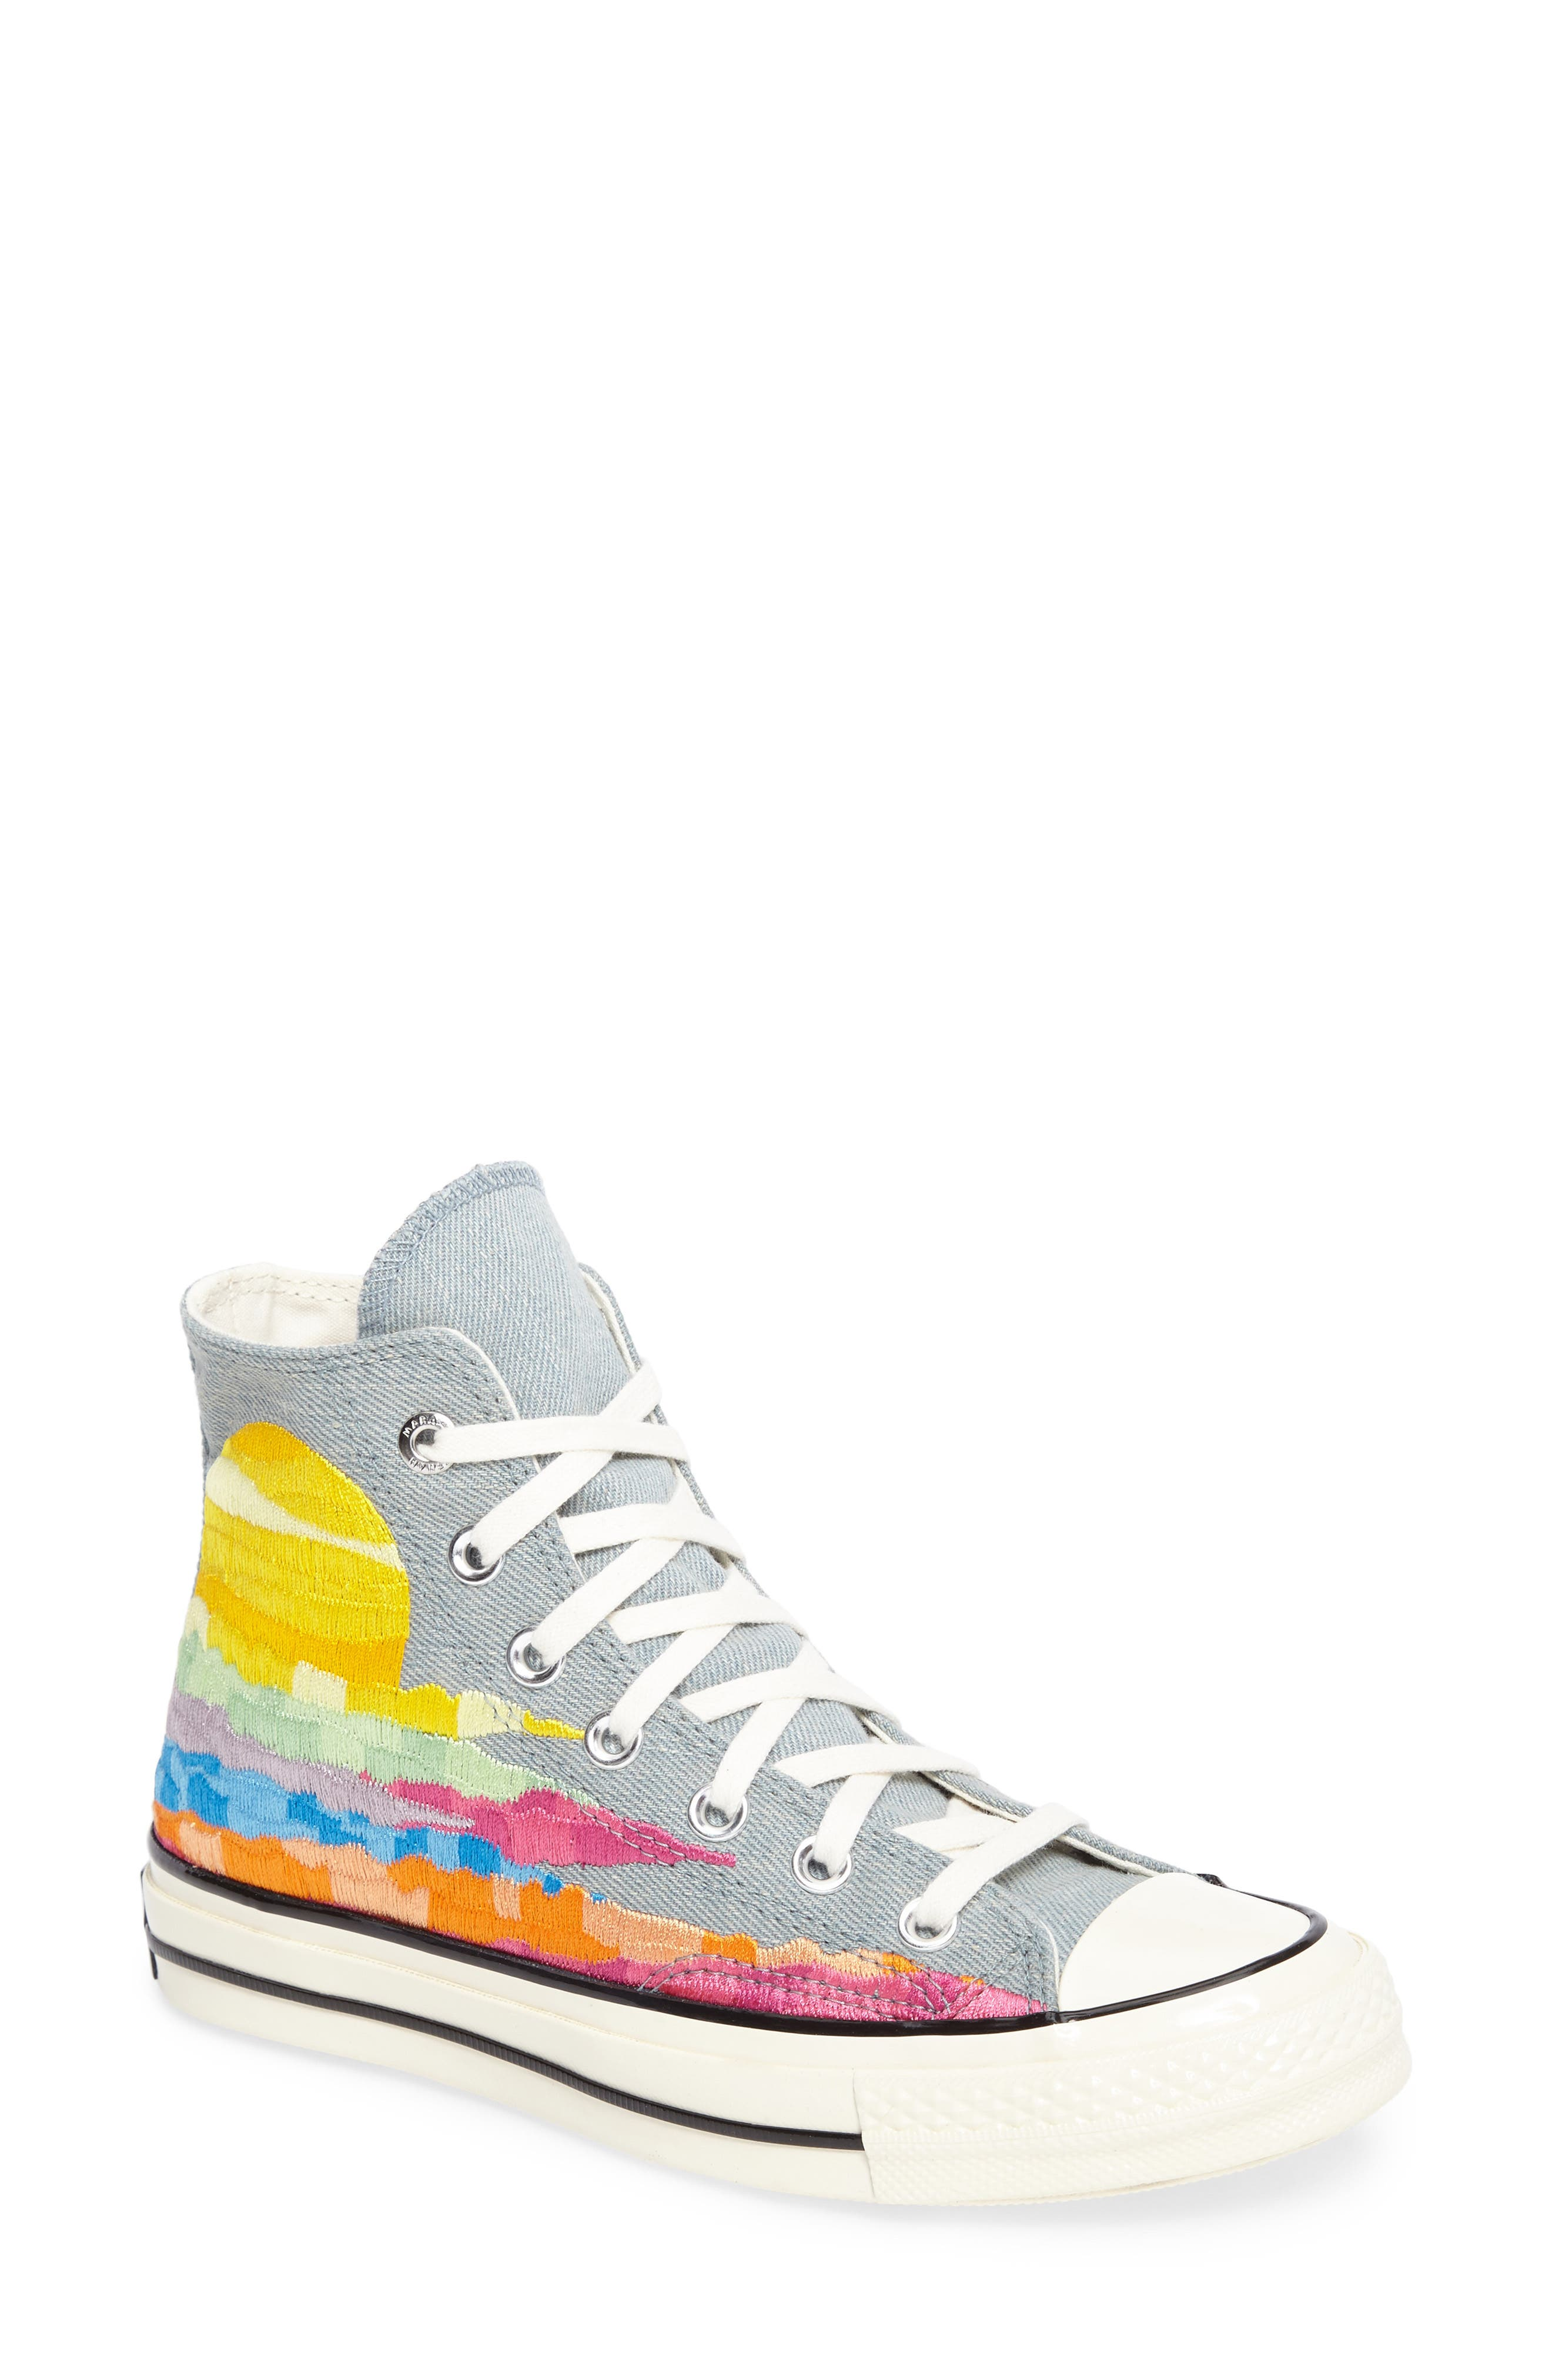 Alternate Image 1 Selected - Converse x Mara Hoffman All Star® Embroidered High Top Sneaker (Women)